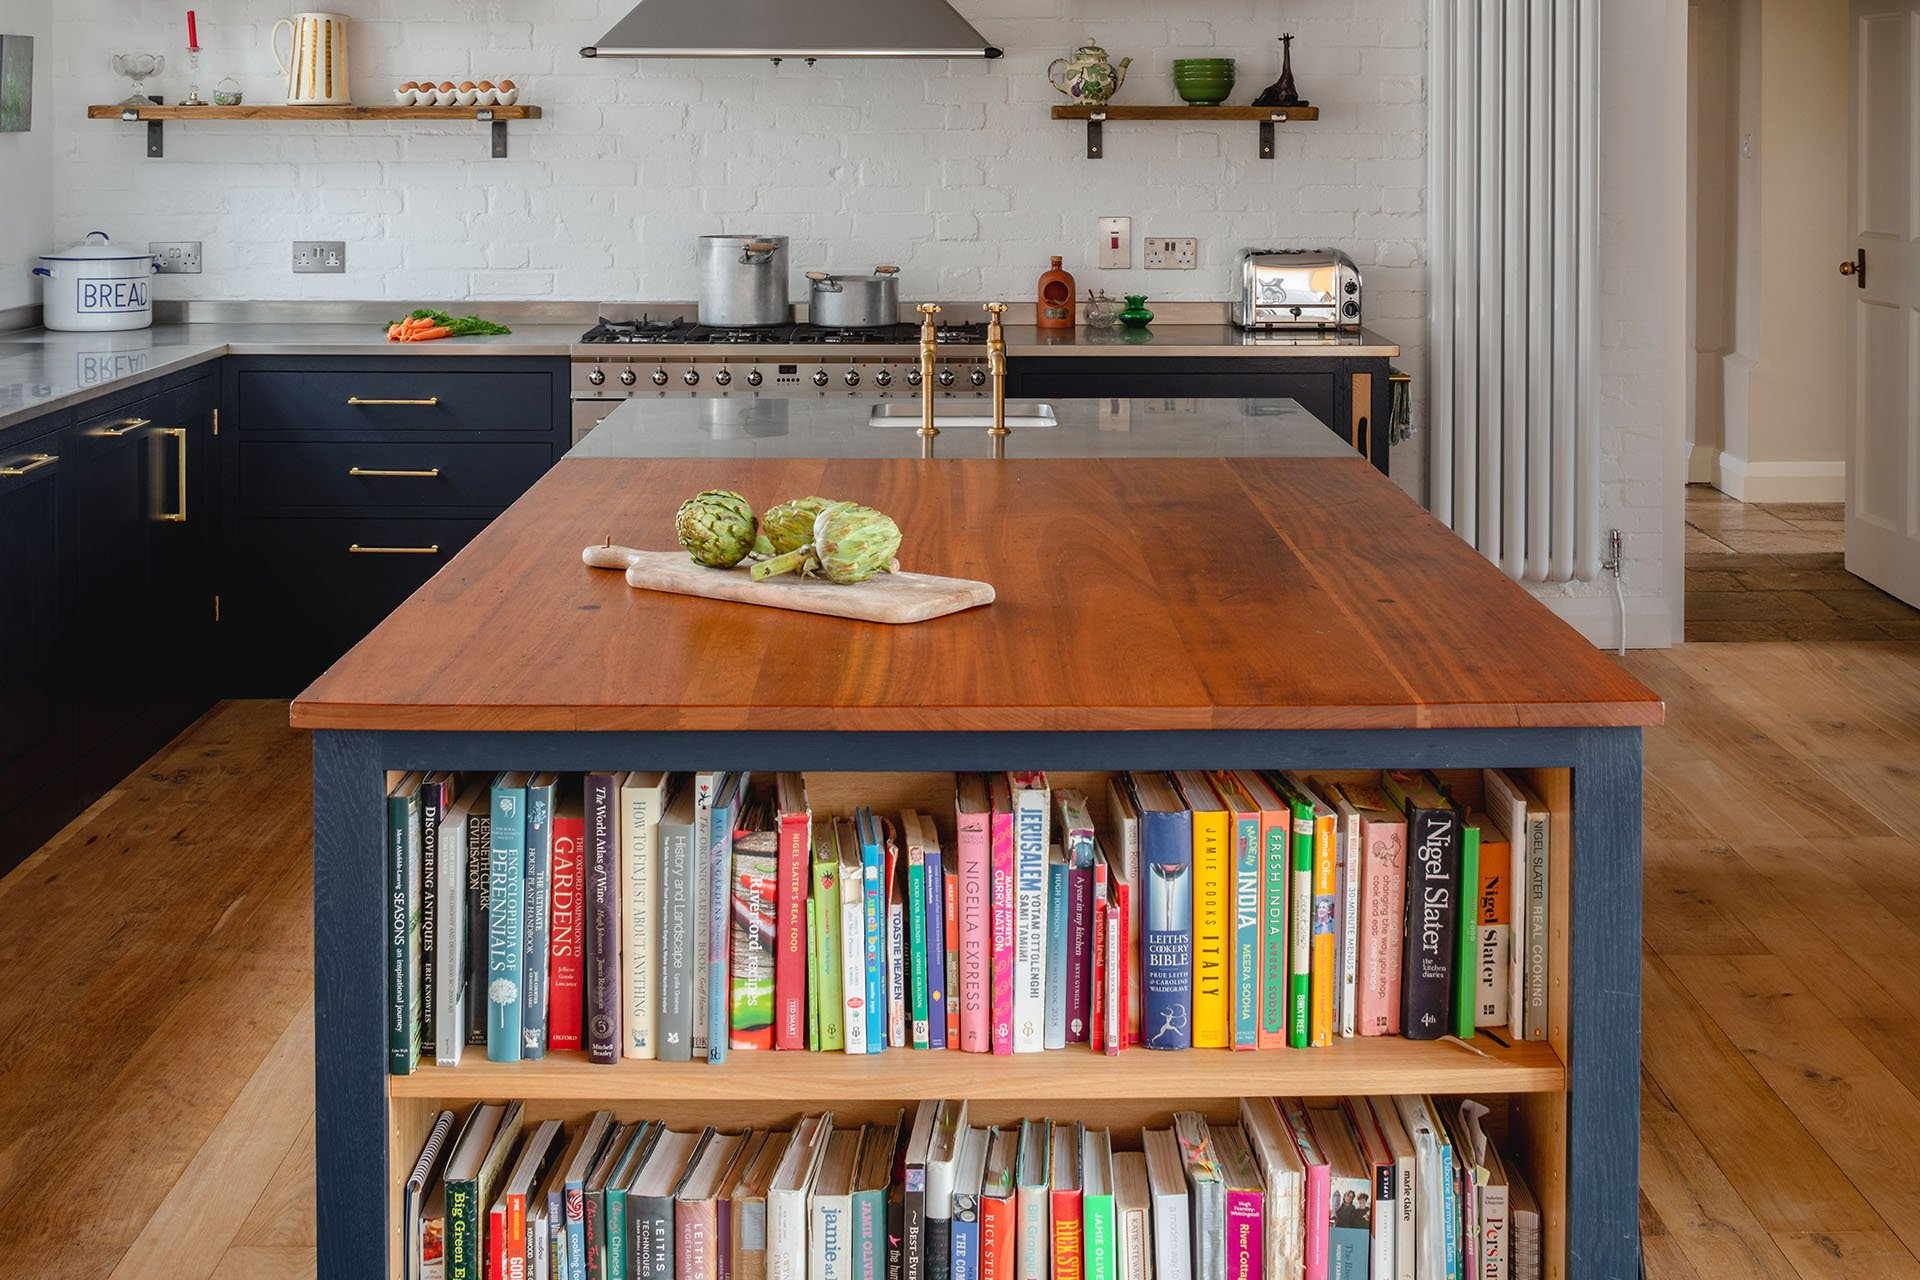 Eco Extension Shaker Kitchen cookery books and vegetables on a reclaimed wooden worktop